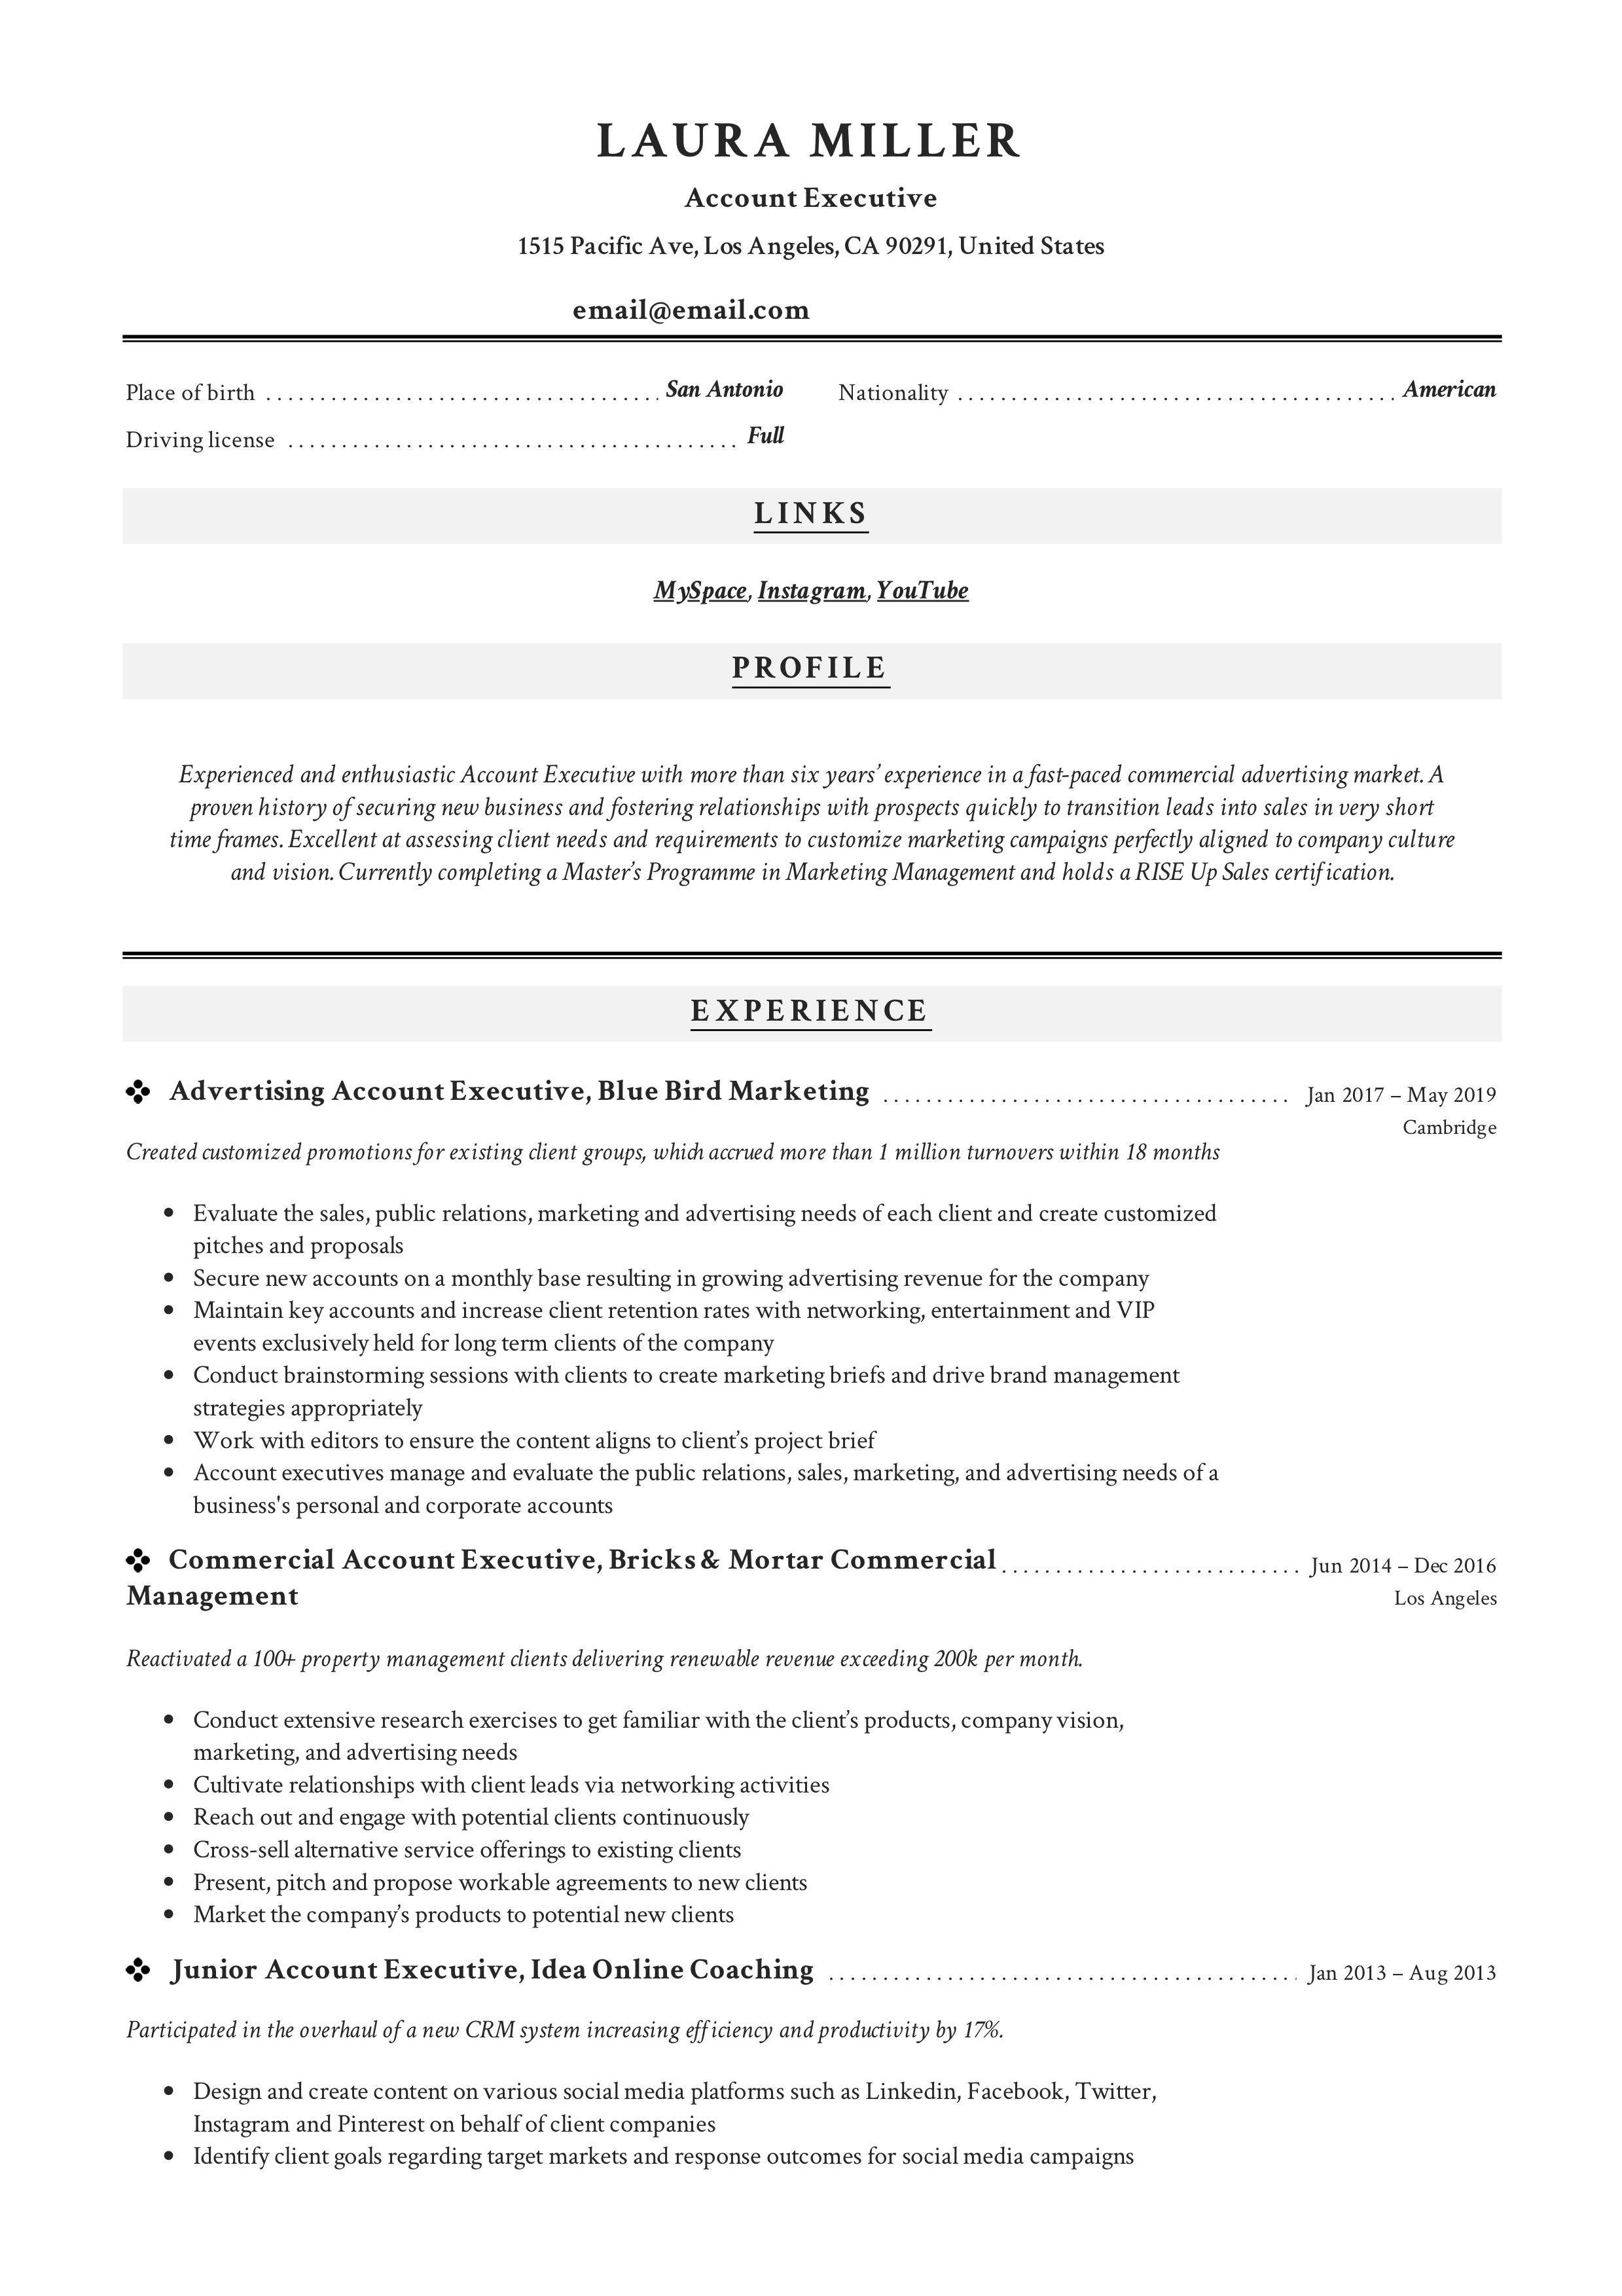 Account Executive Resume Sample Resume Guide Resume Examples Resume Template Professional